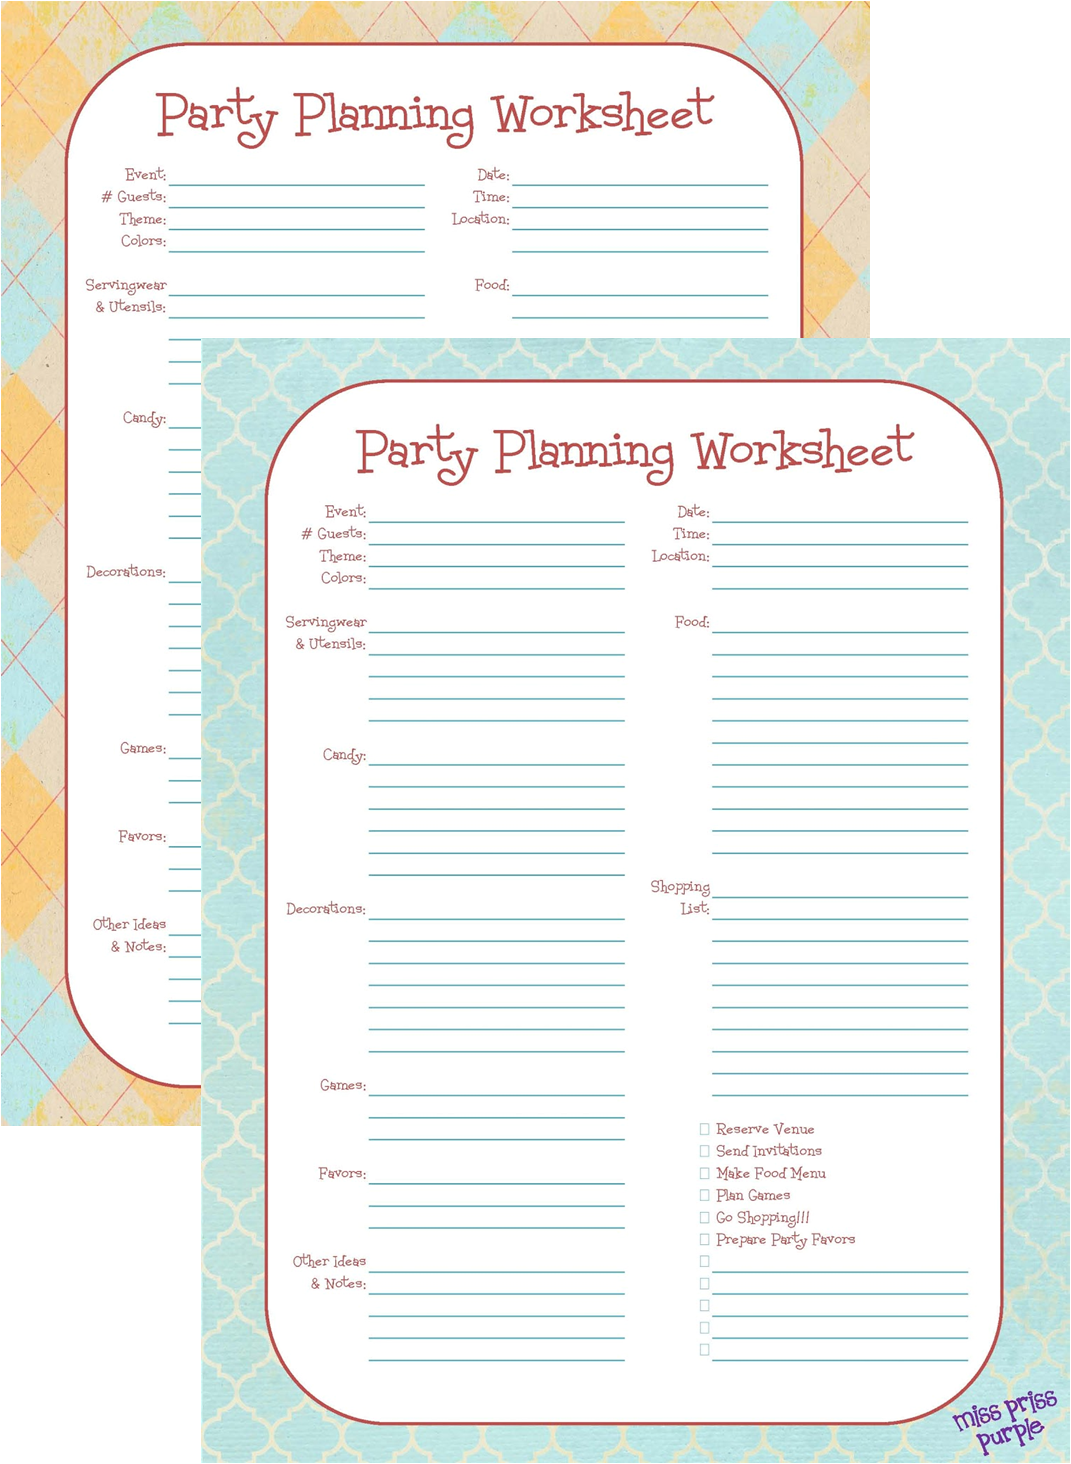 Party Planning 2 Printable